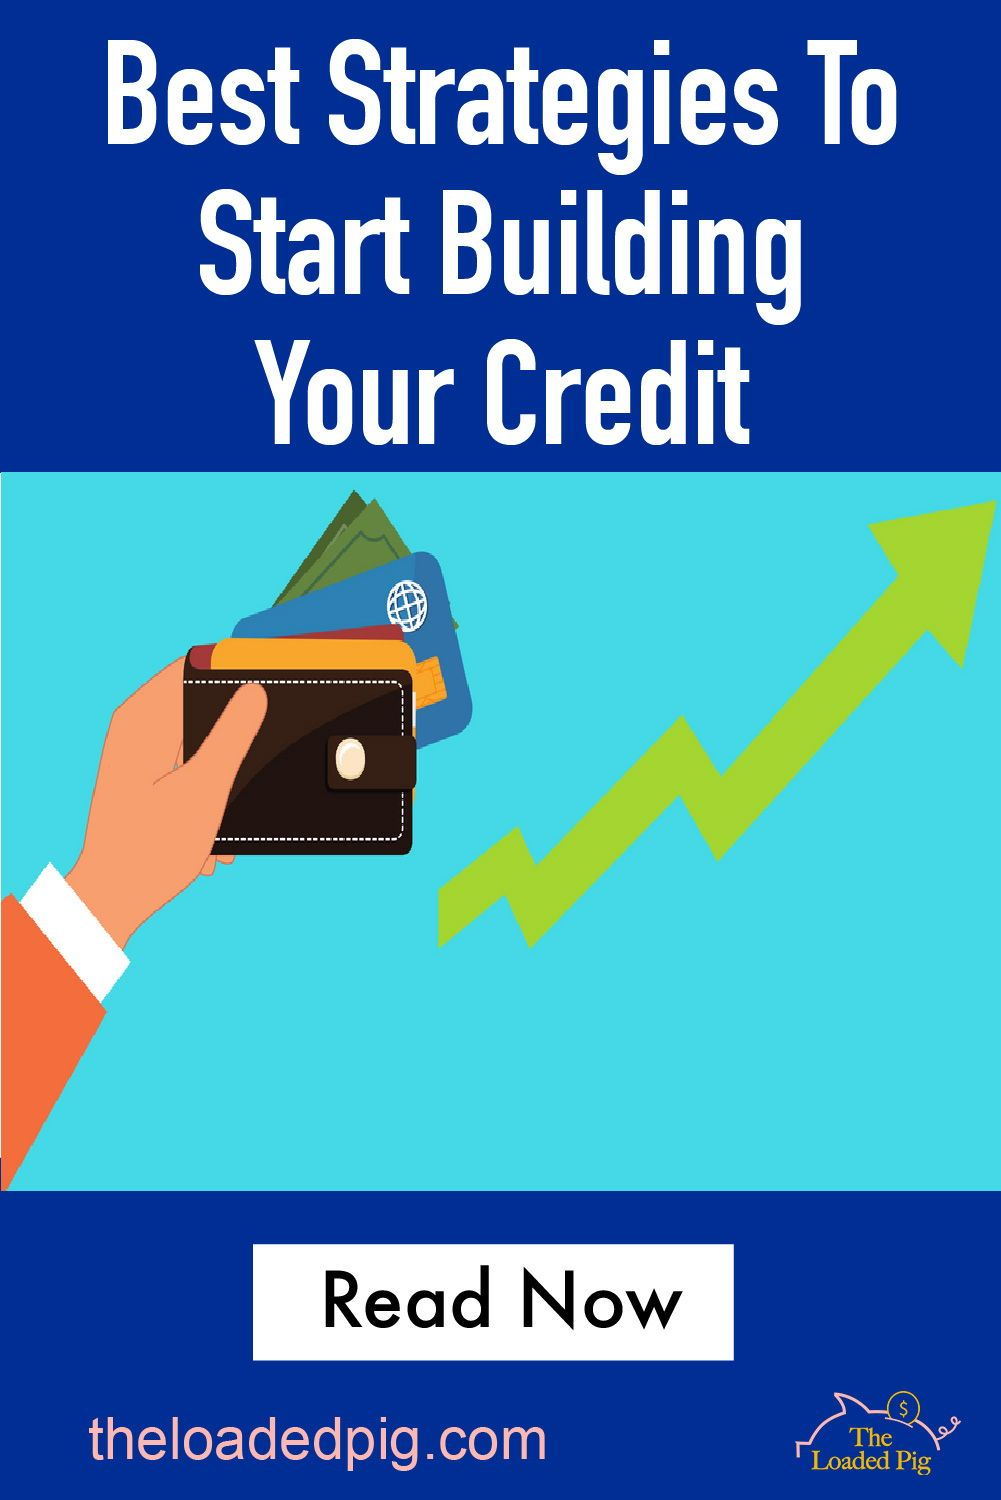 Best strategies to start building your credit in 2020